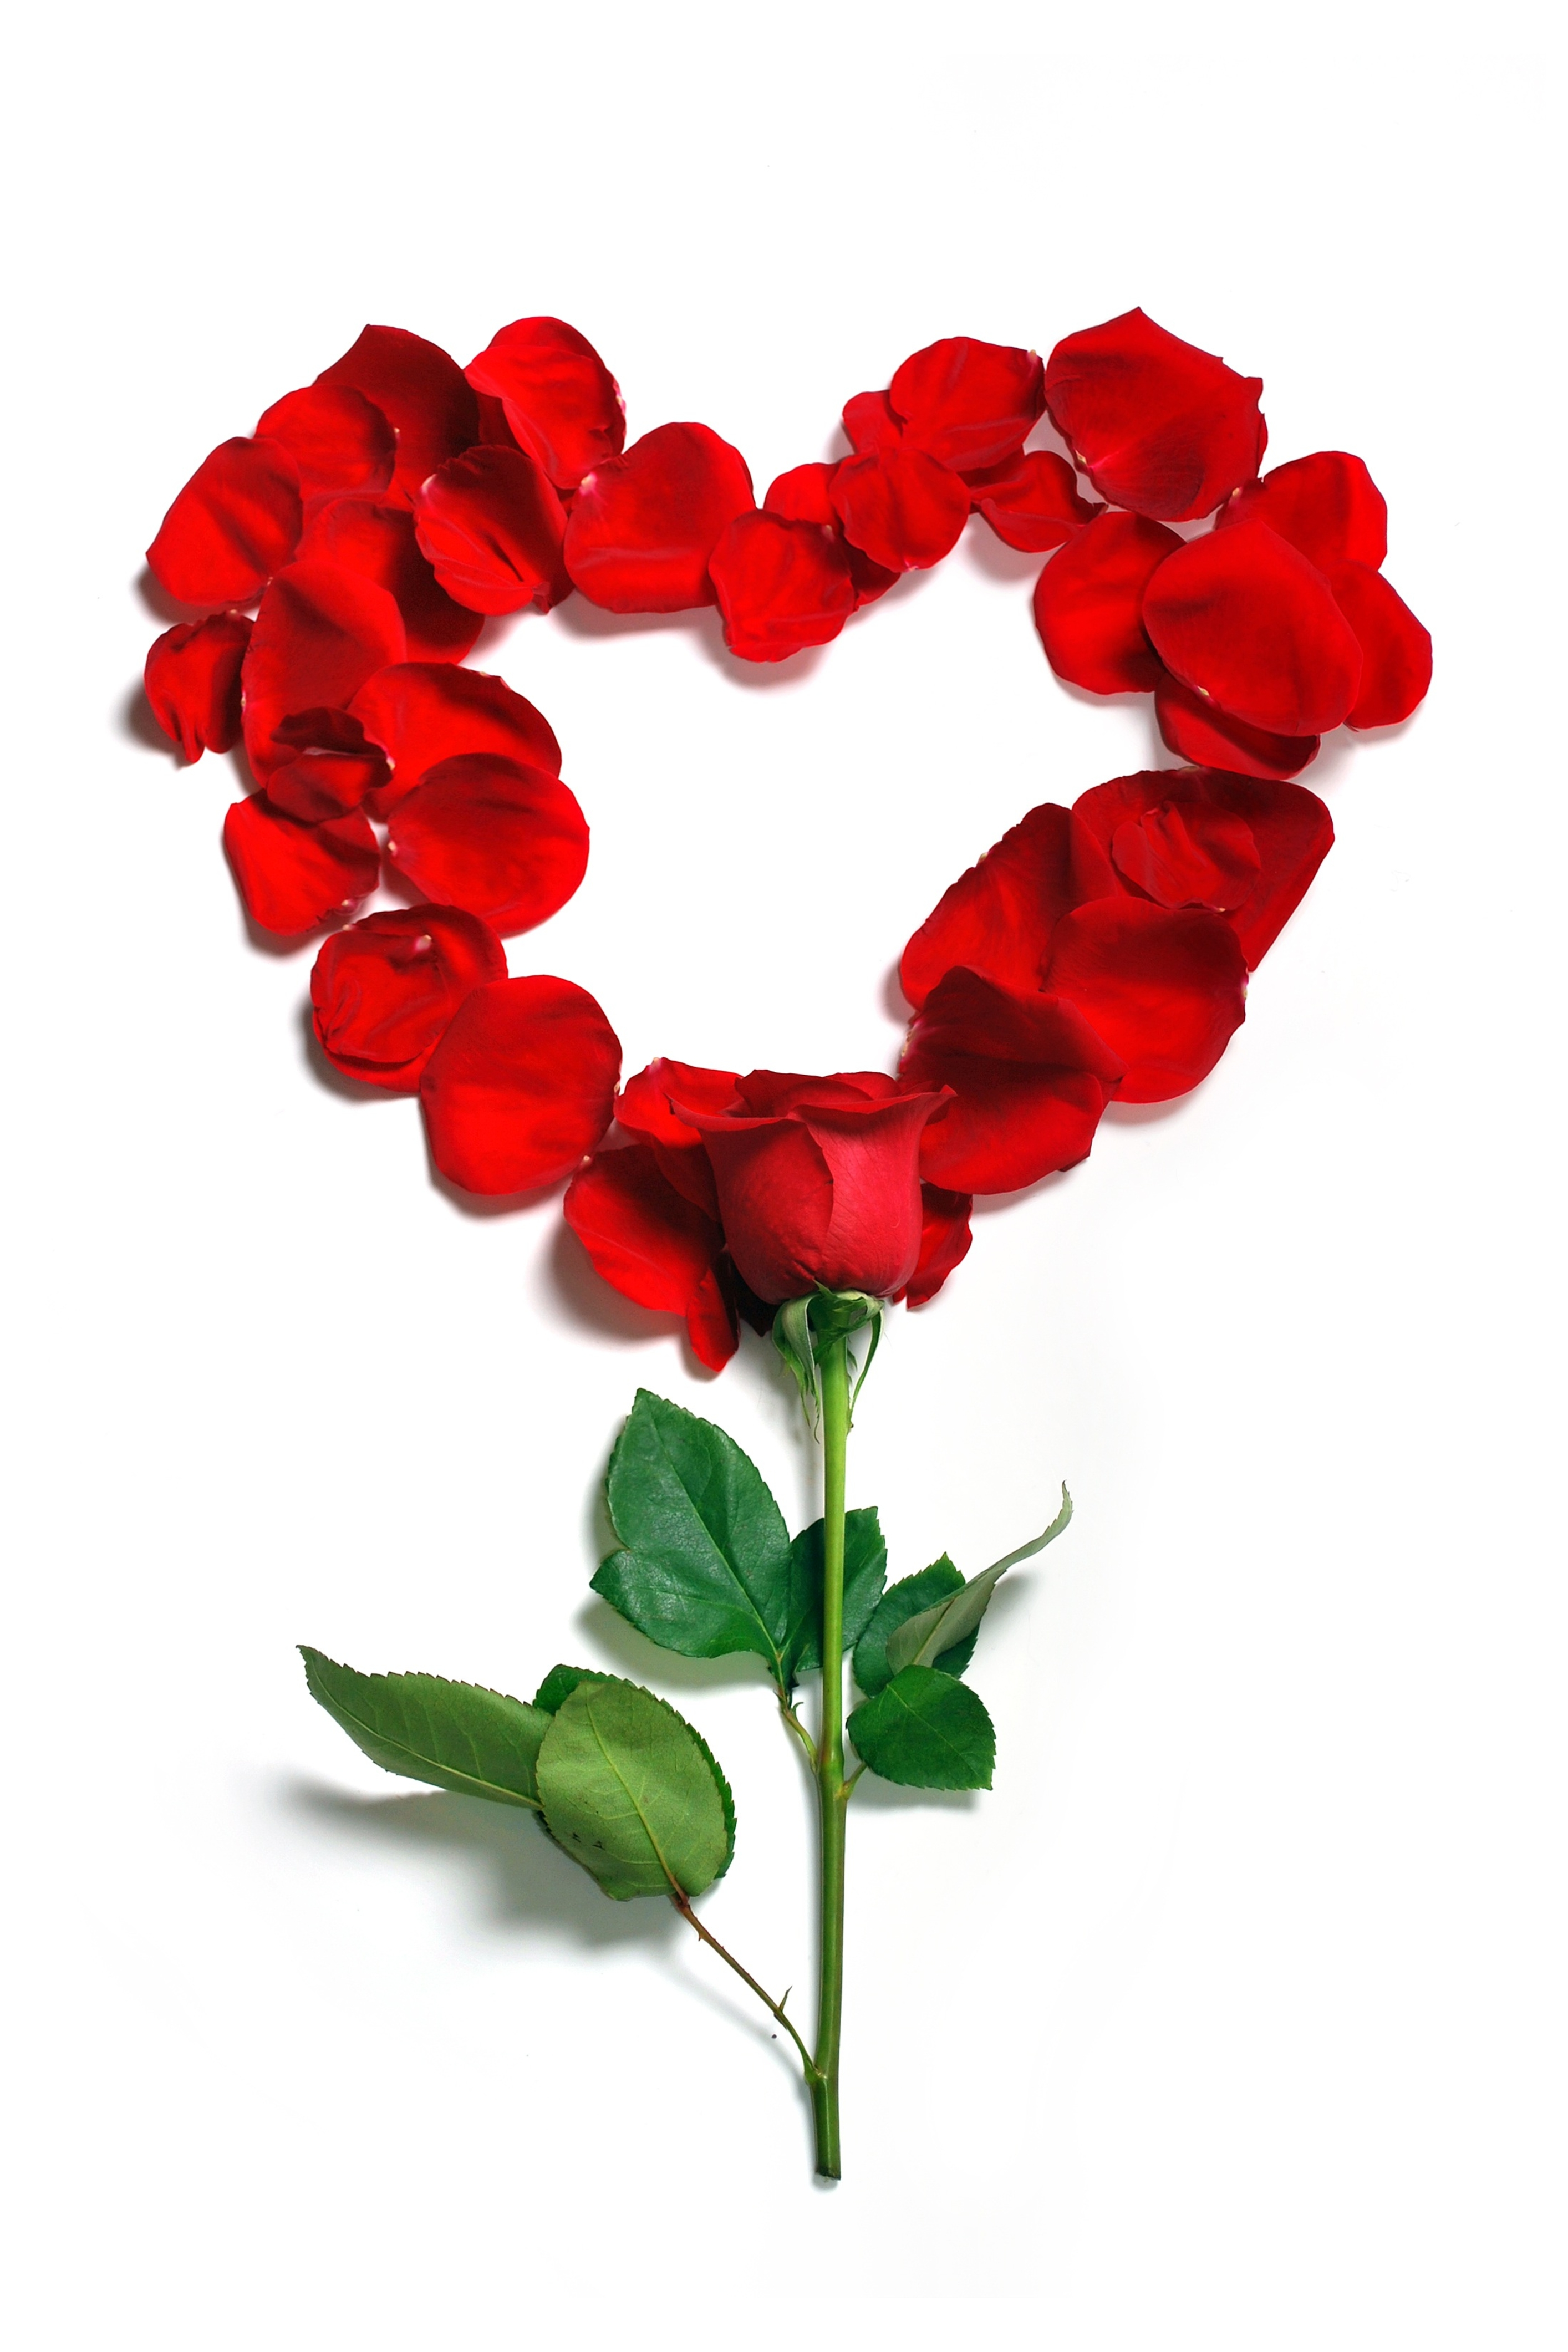 Fun facts you may not know about Valentine's Day